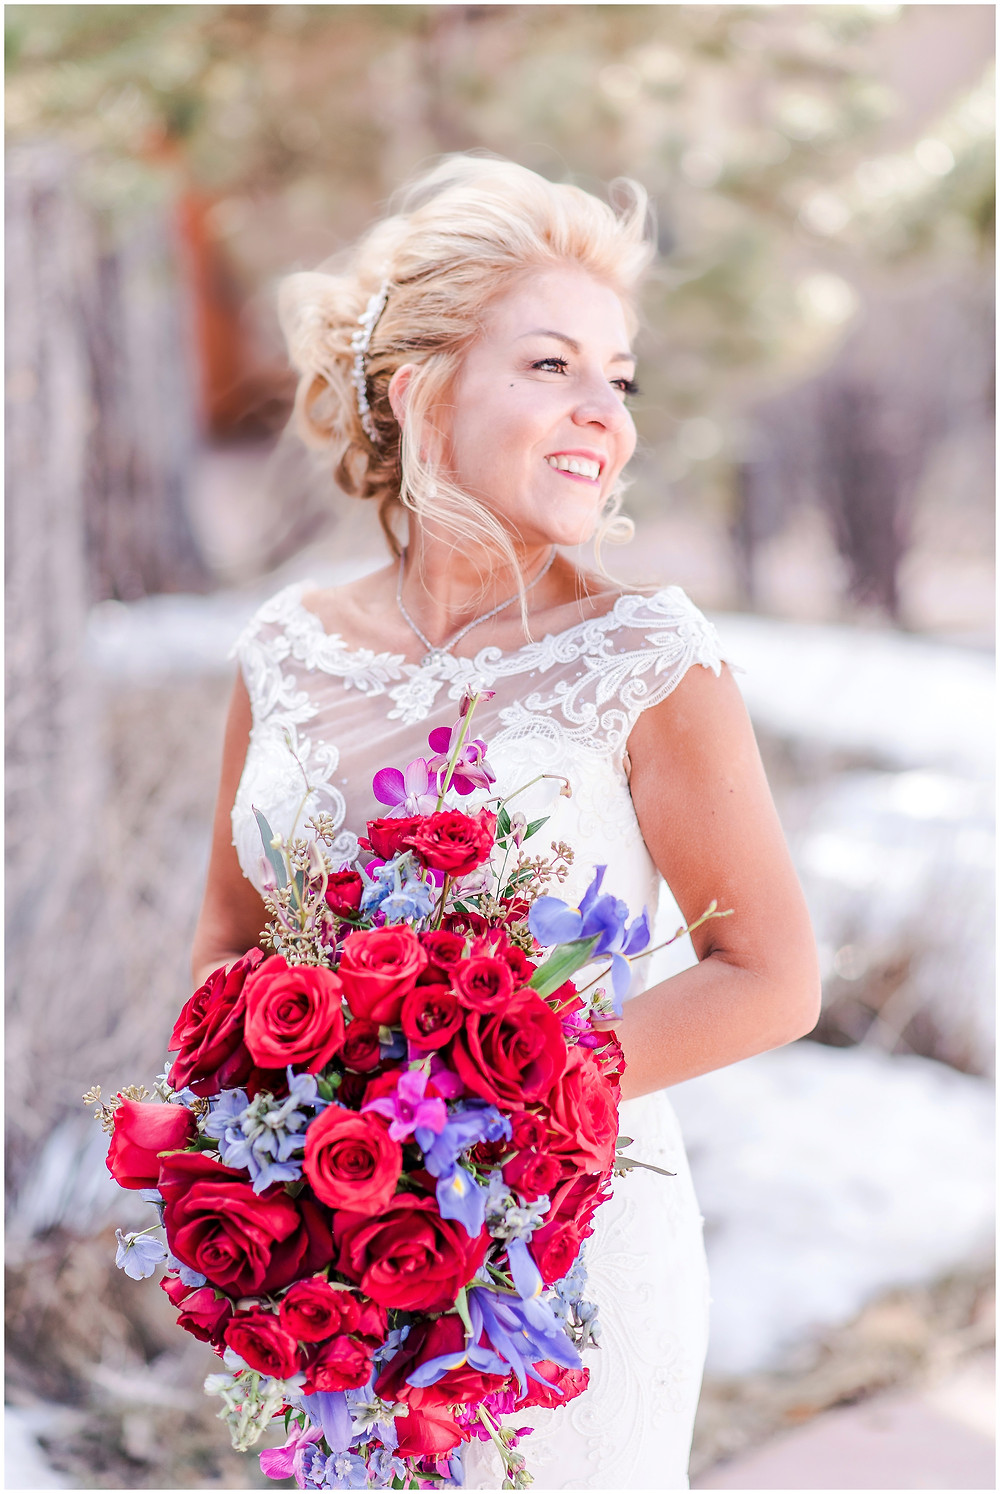 Santa Fe wedding photographer. New Mexico wedding photographer. Albuquerque wedding photographer. Four seasons santa fe wedding. burgundy wedding. navy wedding. maura jane photography. engagement ring. sapphire ring. wedding rings. bridal photos. bride. wedding bouquet. photos of bride